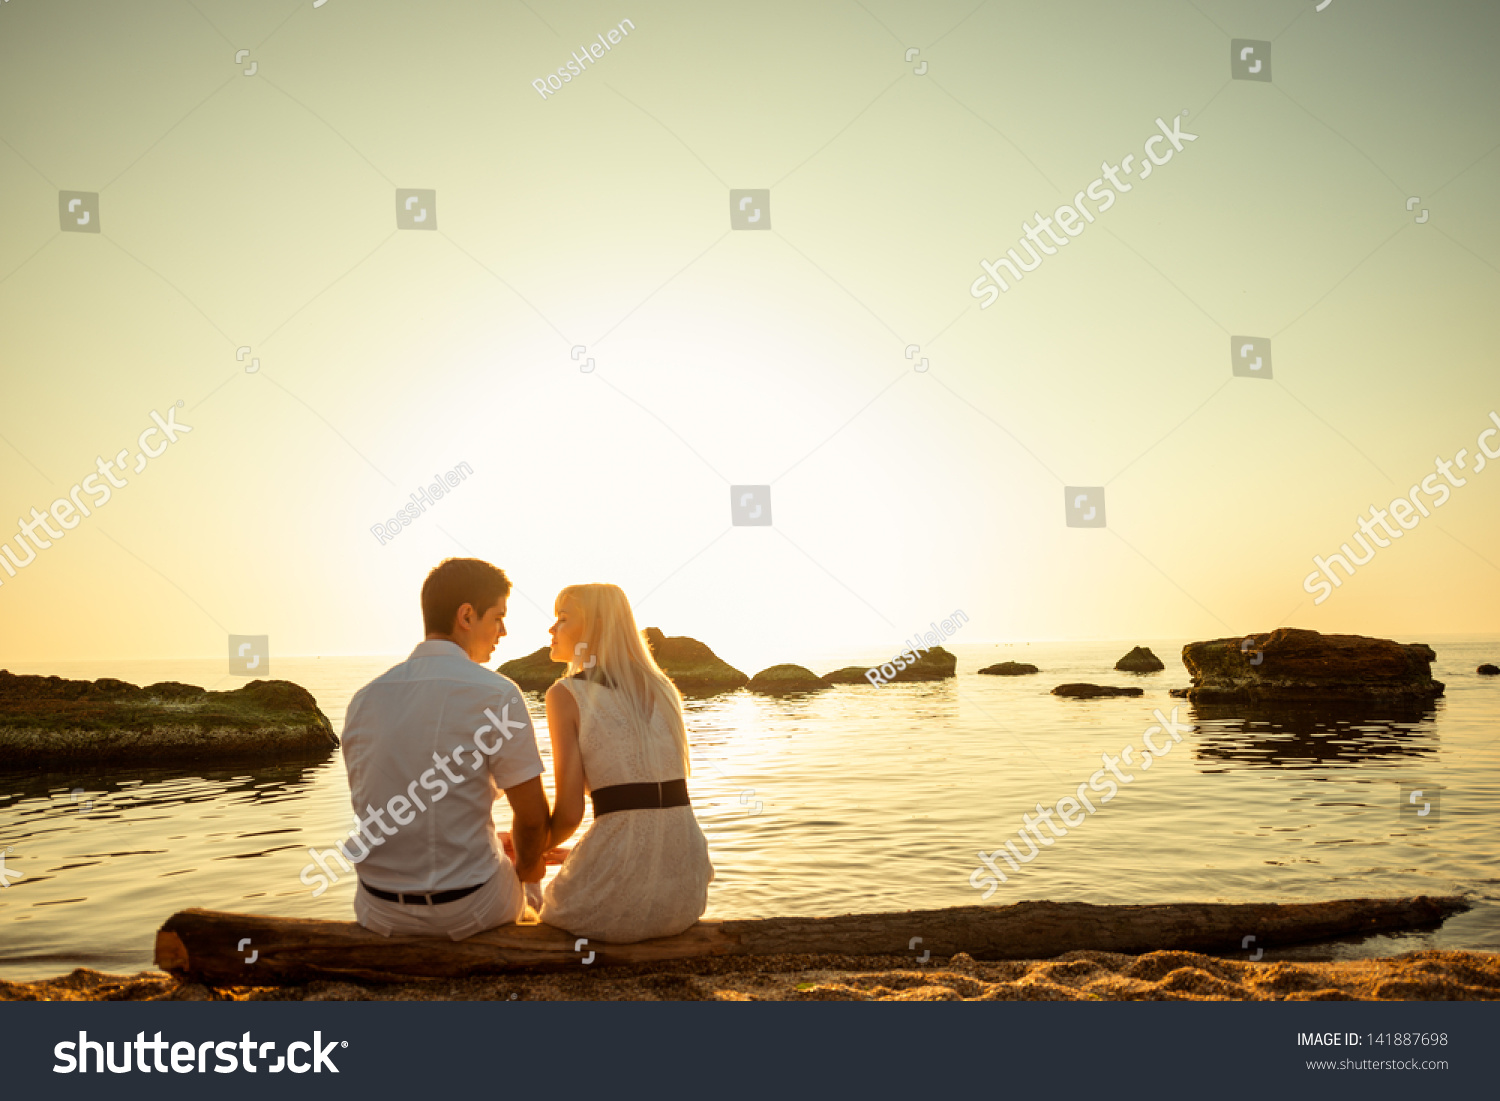 chavon abajo catholic women dating site Travel, vacation and holiday guide to the dominican republic dominican republic travel guide share pin email search go  religions: mainly roman catholic.